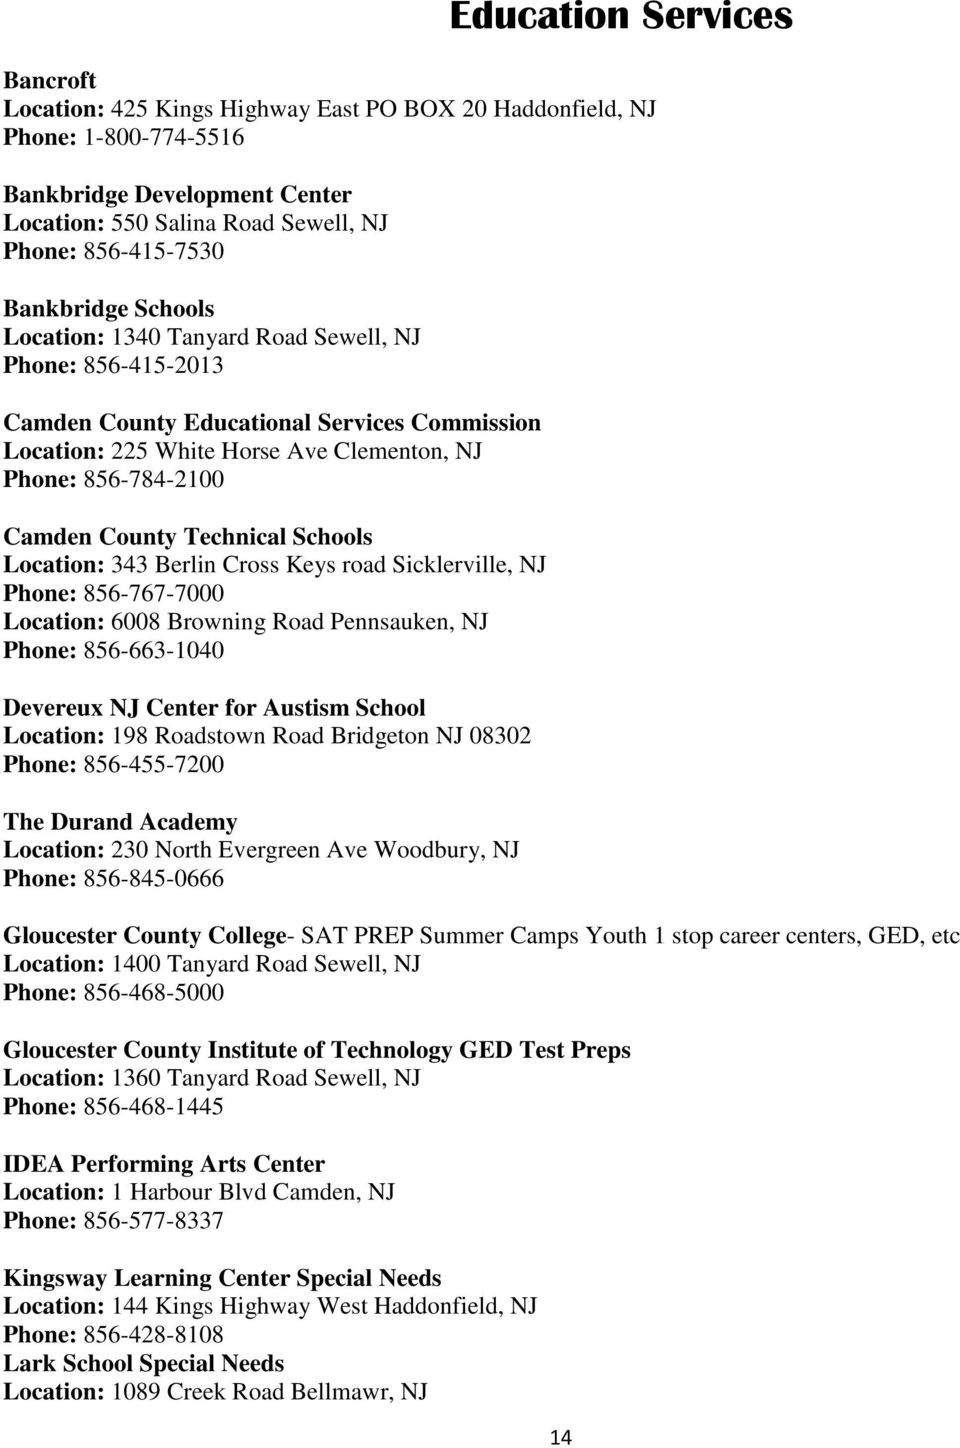 County Technical Schools Location: 343 Berlin Cross Keys road Sicklerville, NJ Phone: 856-767-7000 Location: 6008 Browning Road Pennsauken, NJ Phone: 856-663-1040 Devereux NJ Center for Austism